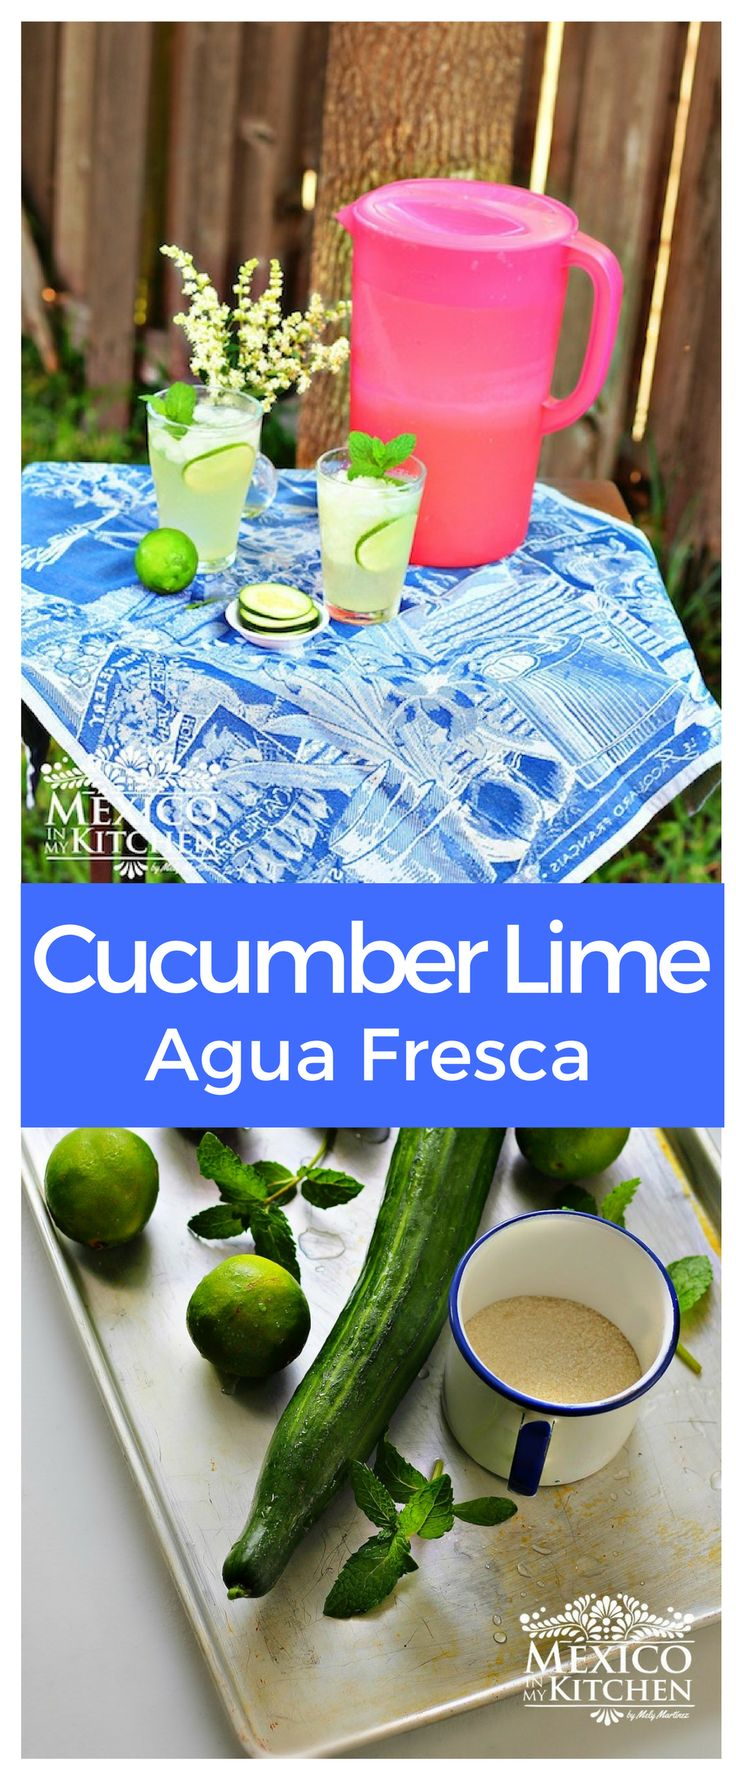 Cucumber-Lime agua fresca is among some of the popular drinksfor those hot summer days. #drinks #mexican #food